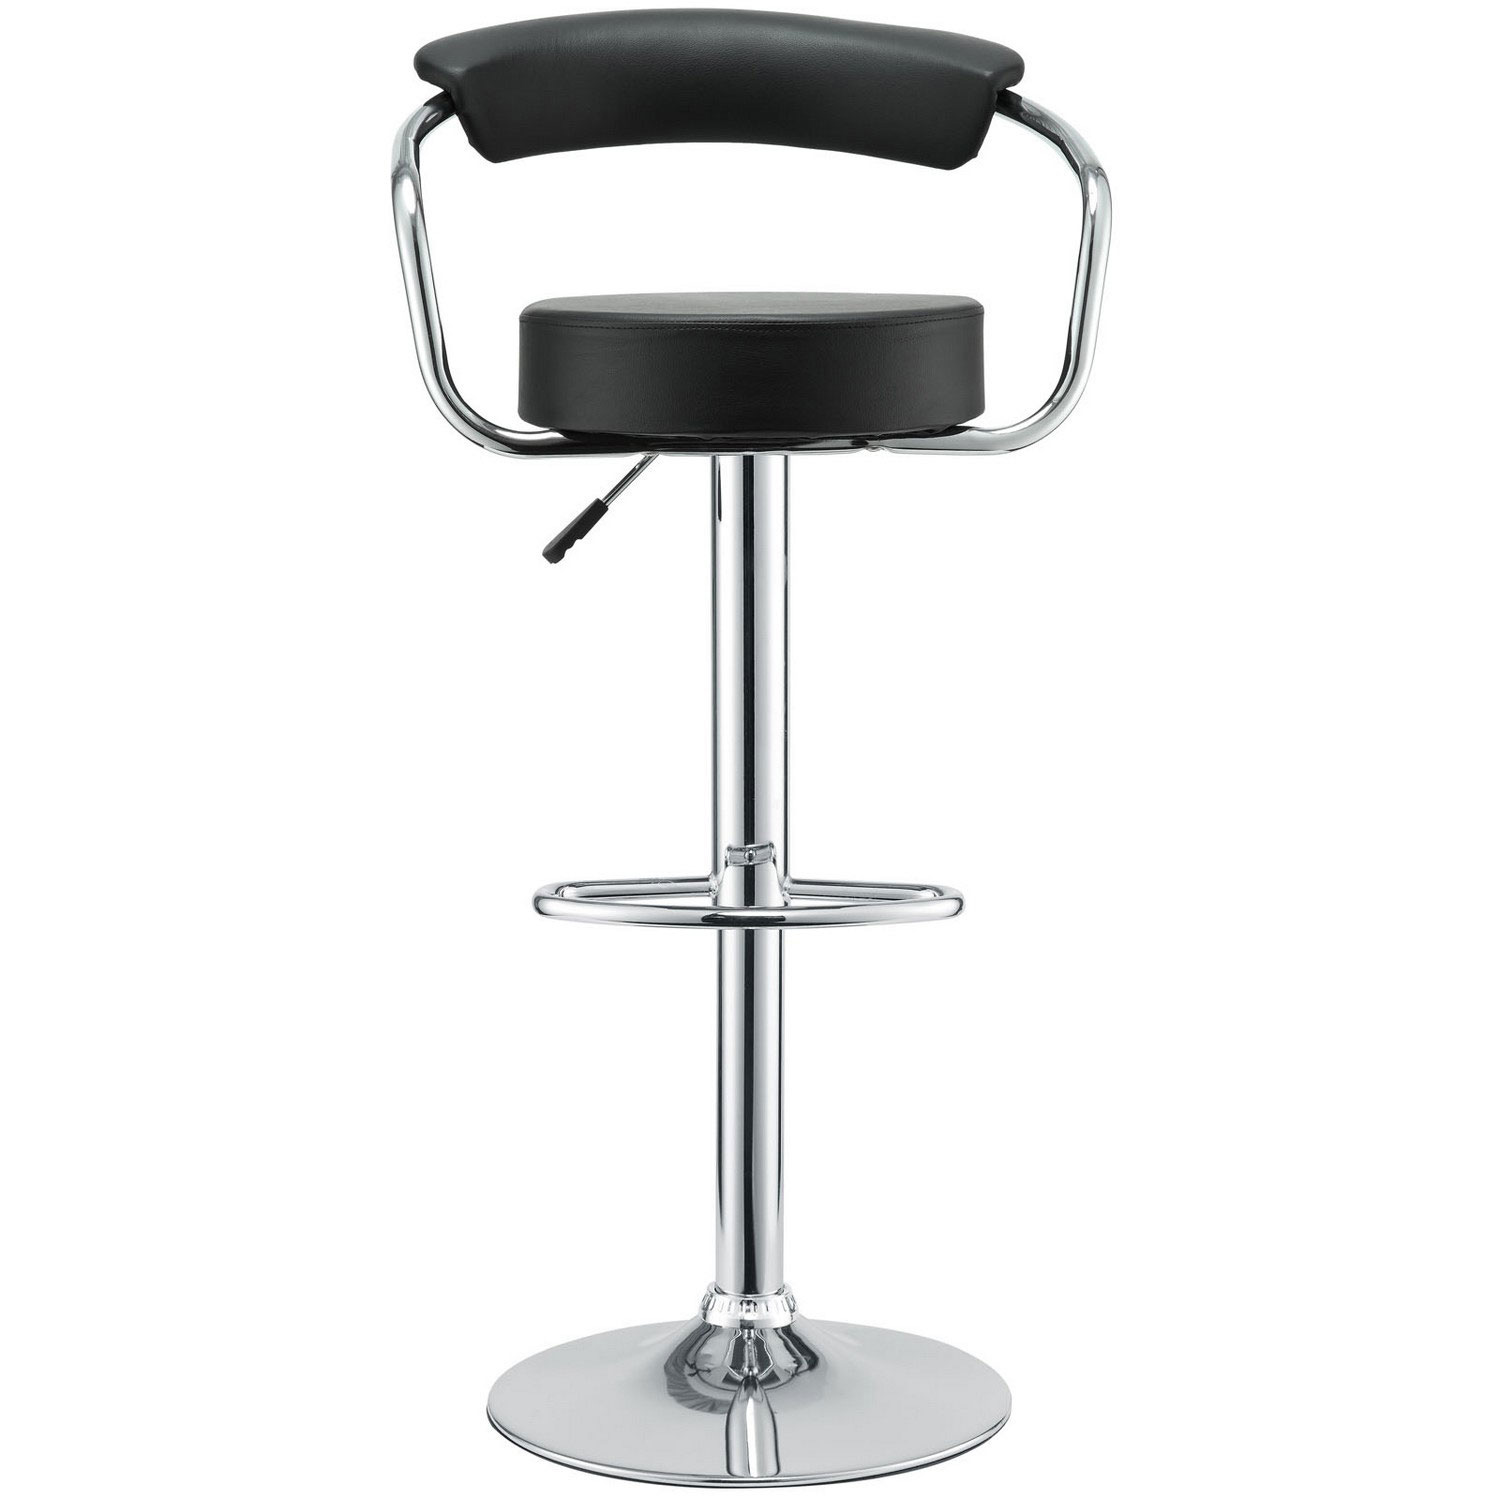 Modway Diner Bar Stool Set of 4 - Black